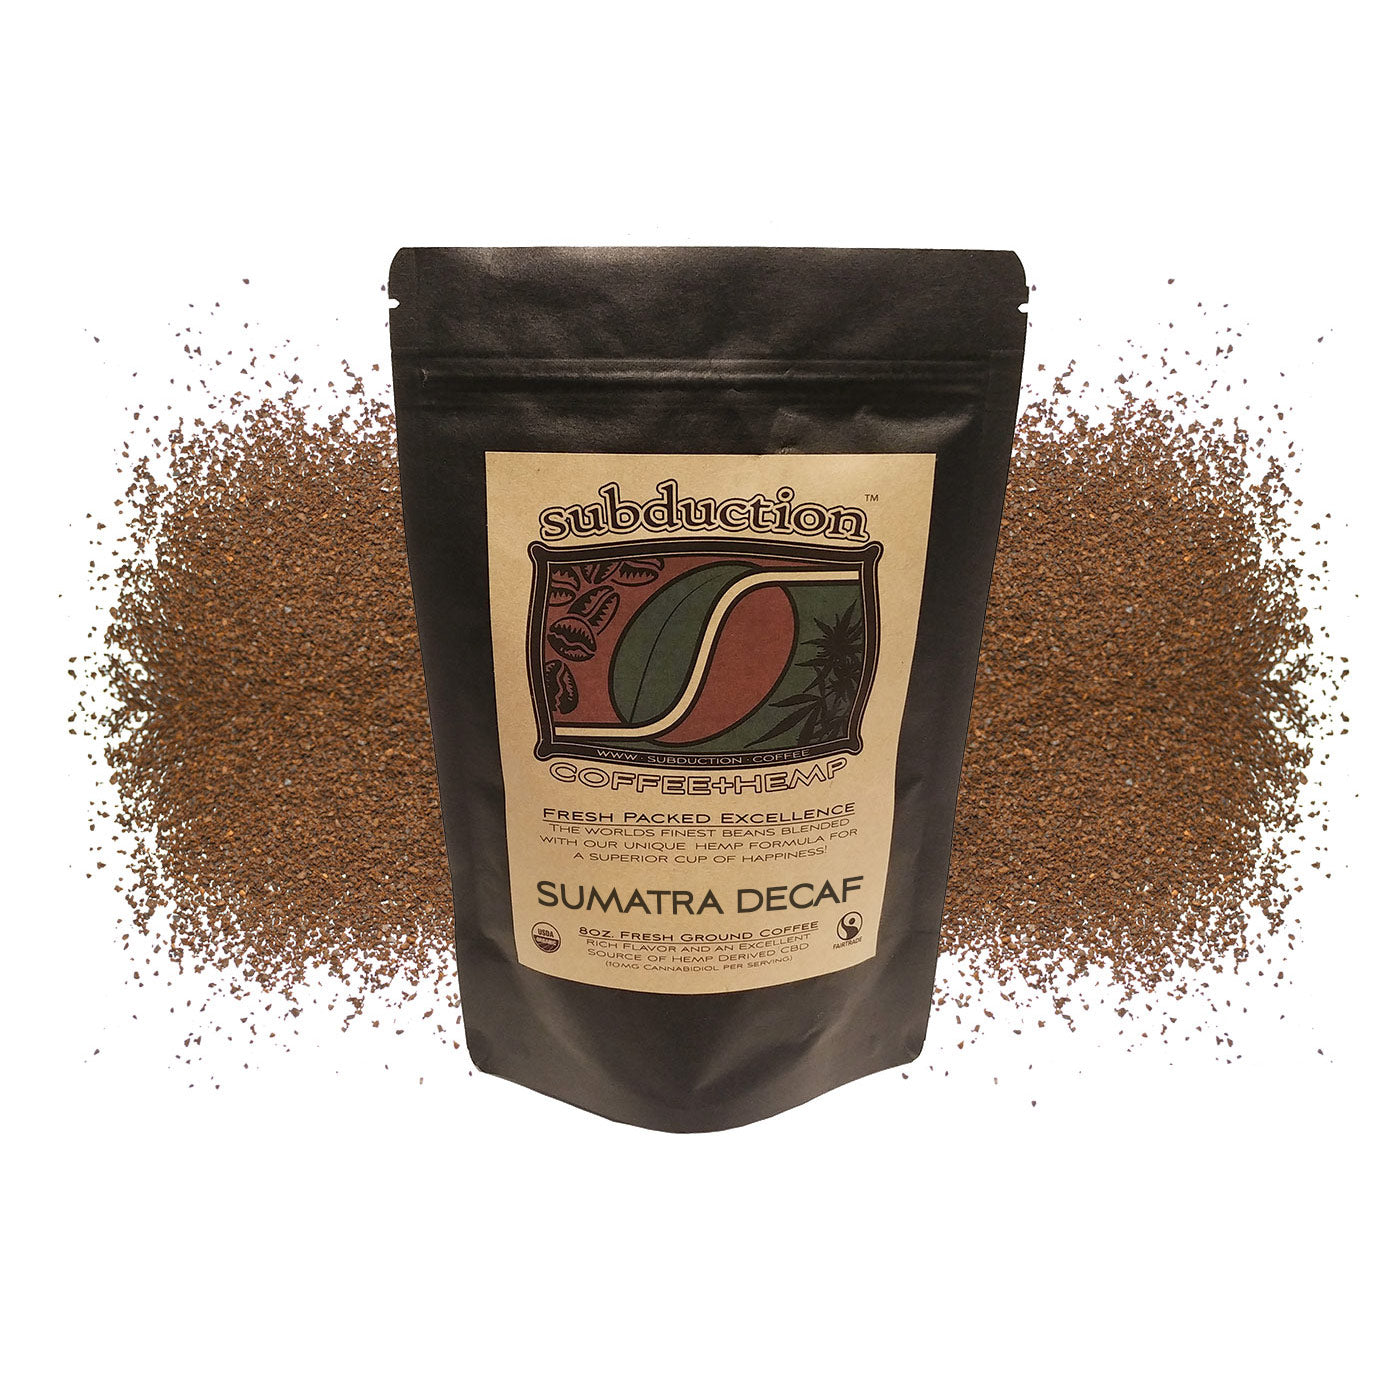 Sumatra Decaf Coffee - Bagged